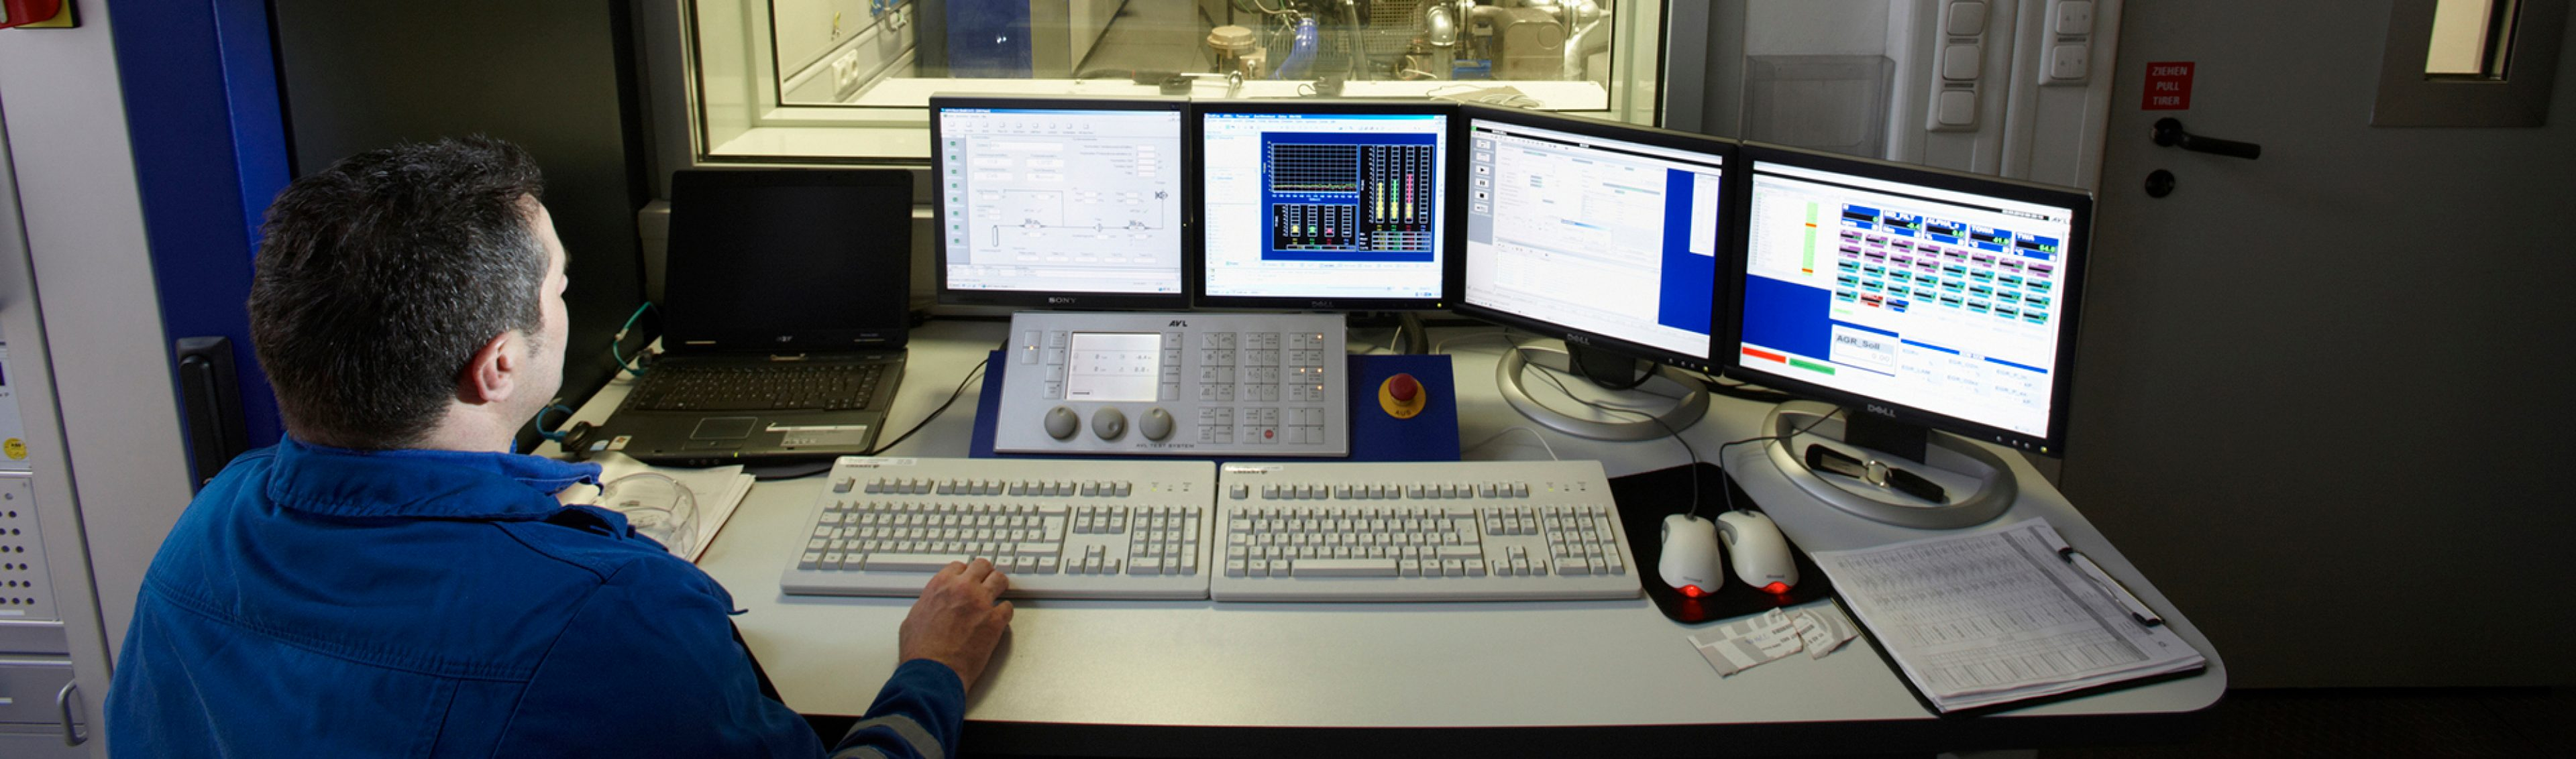 An operator monitors the engine test rig control unit's computer screens at the BP/Aral Fuel Research Centre Kraftstoffforschung, in Bochum, Germany.